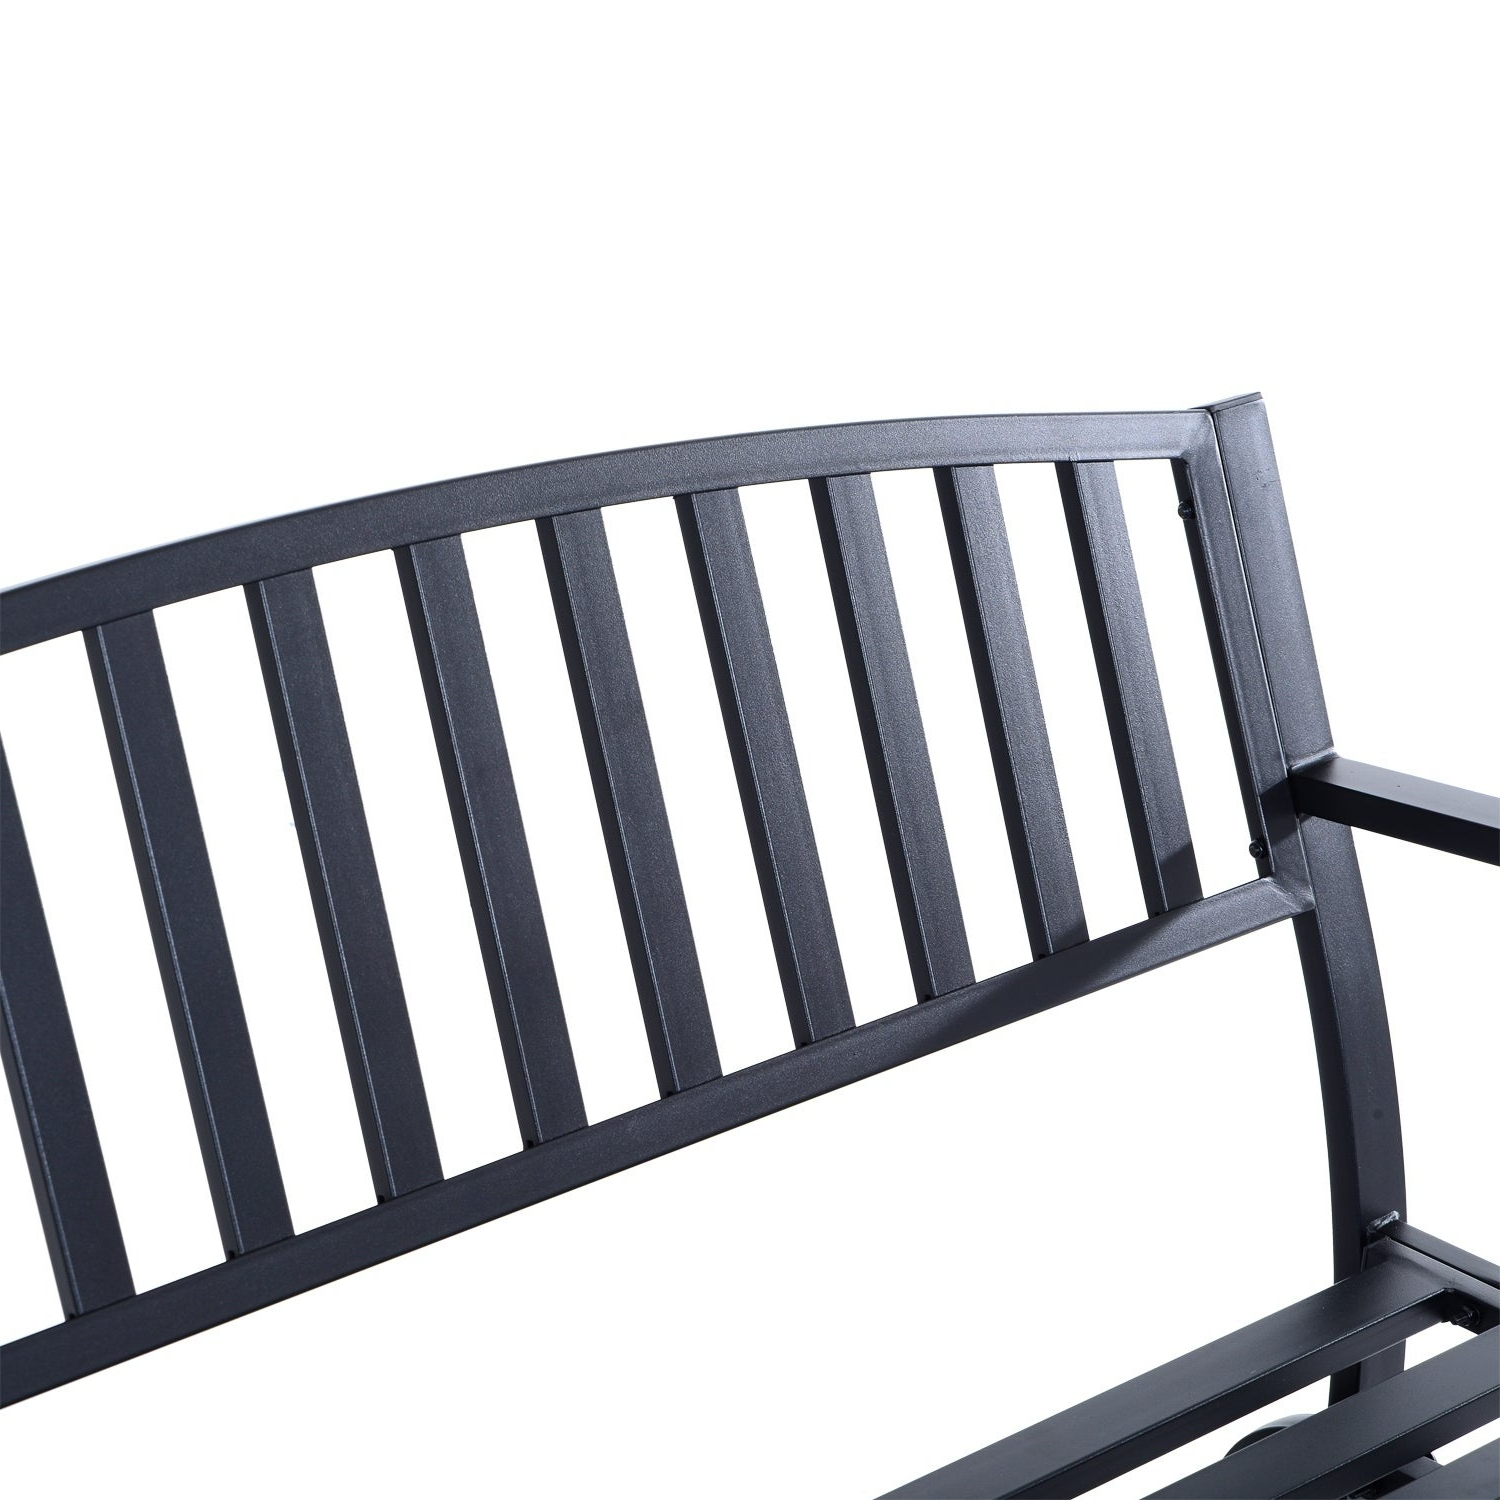 Latest Outsunny 50 Inch Outdoor Steel Patio Swing Glider Bench – Black Throughout Outdoor Steel Patio Swing Glider Benches (View 24 of 25)